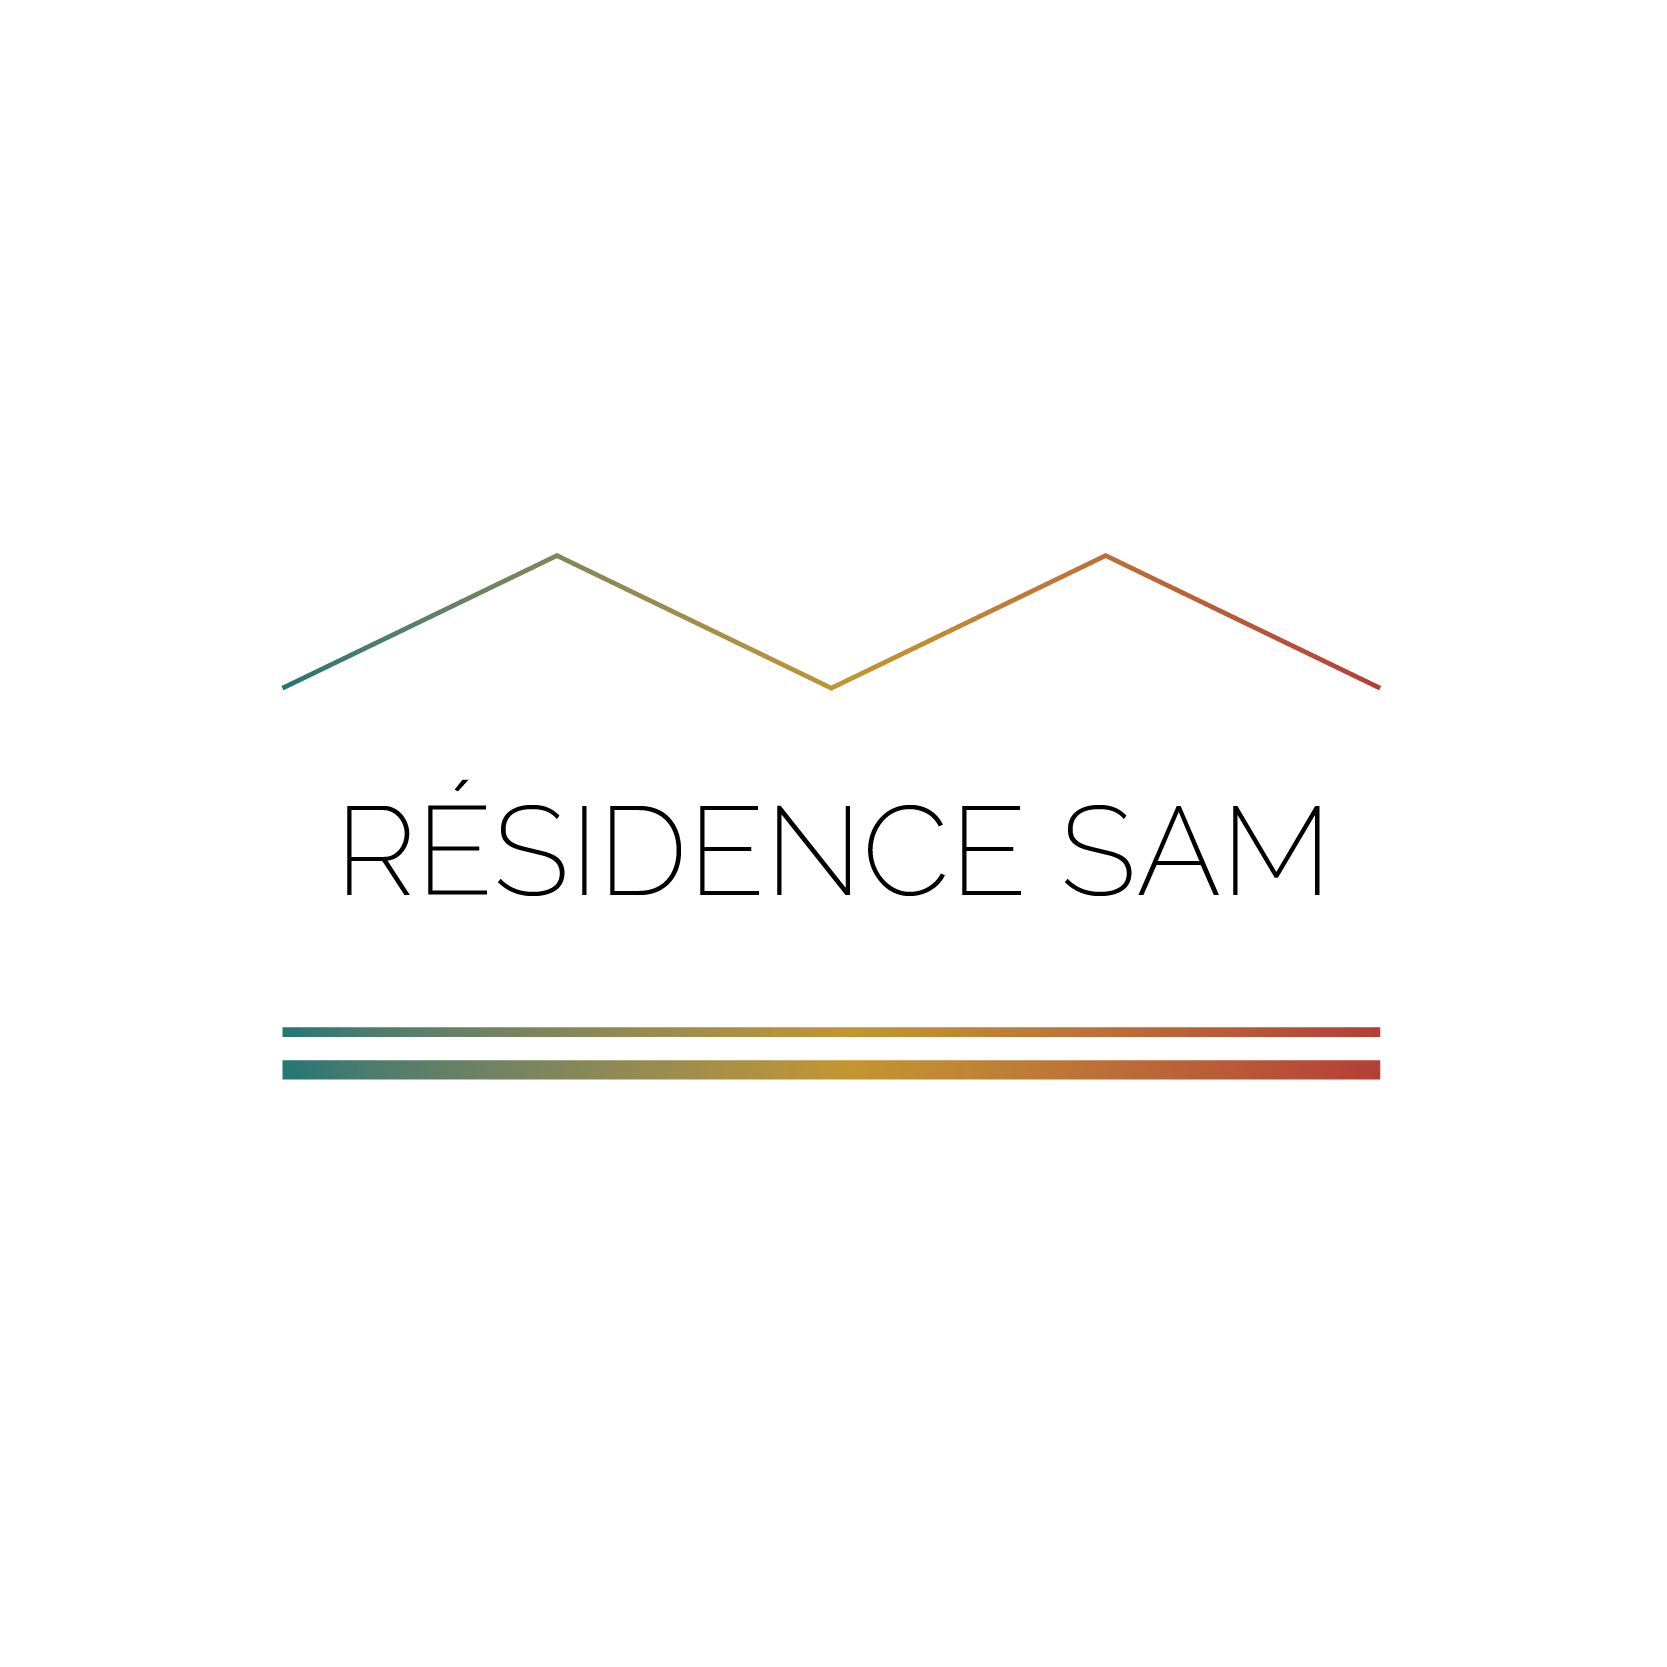 RÉSIDENTS SAM 2017